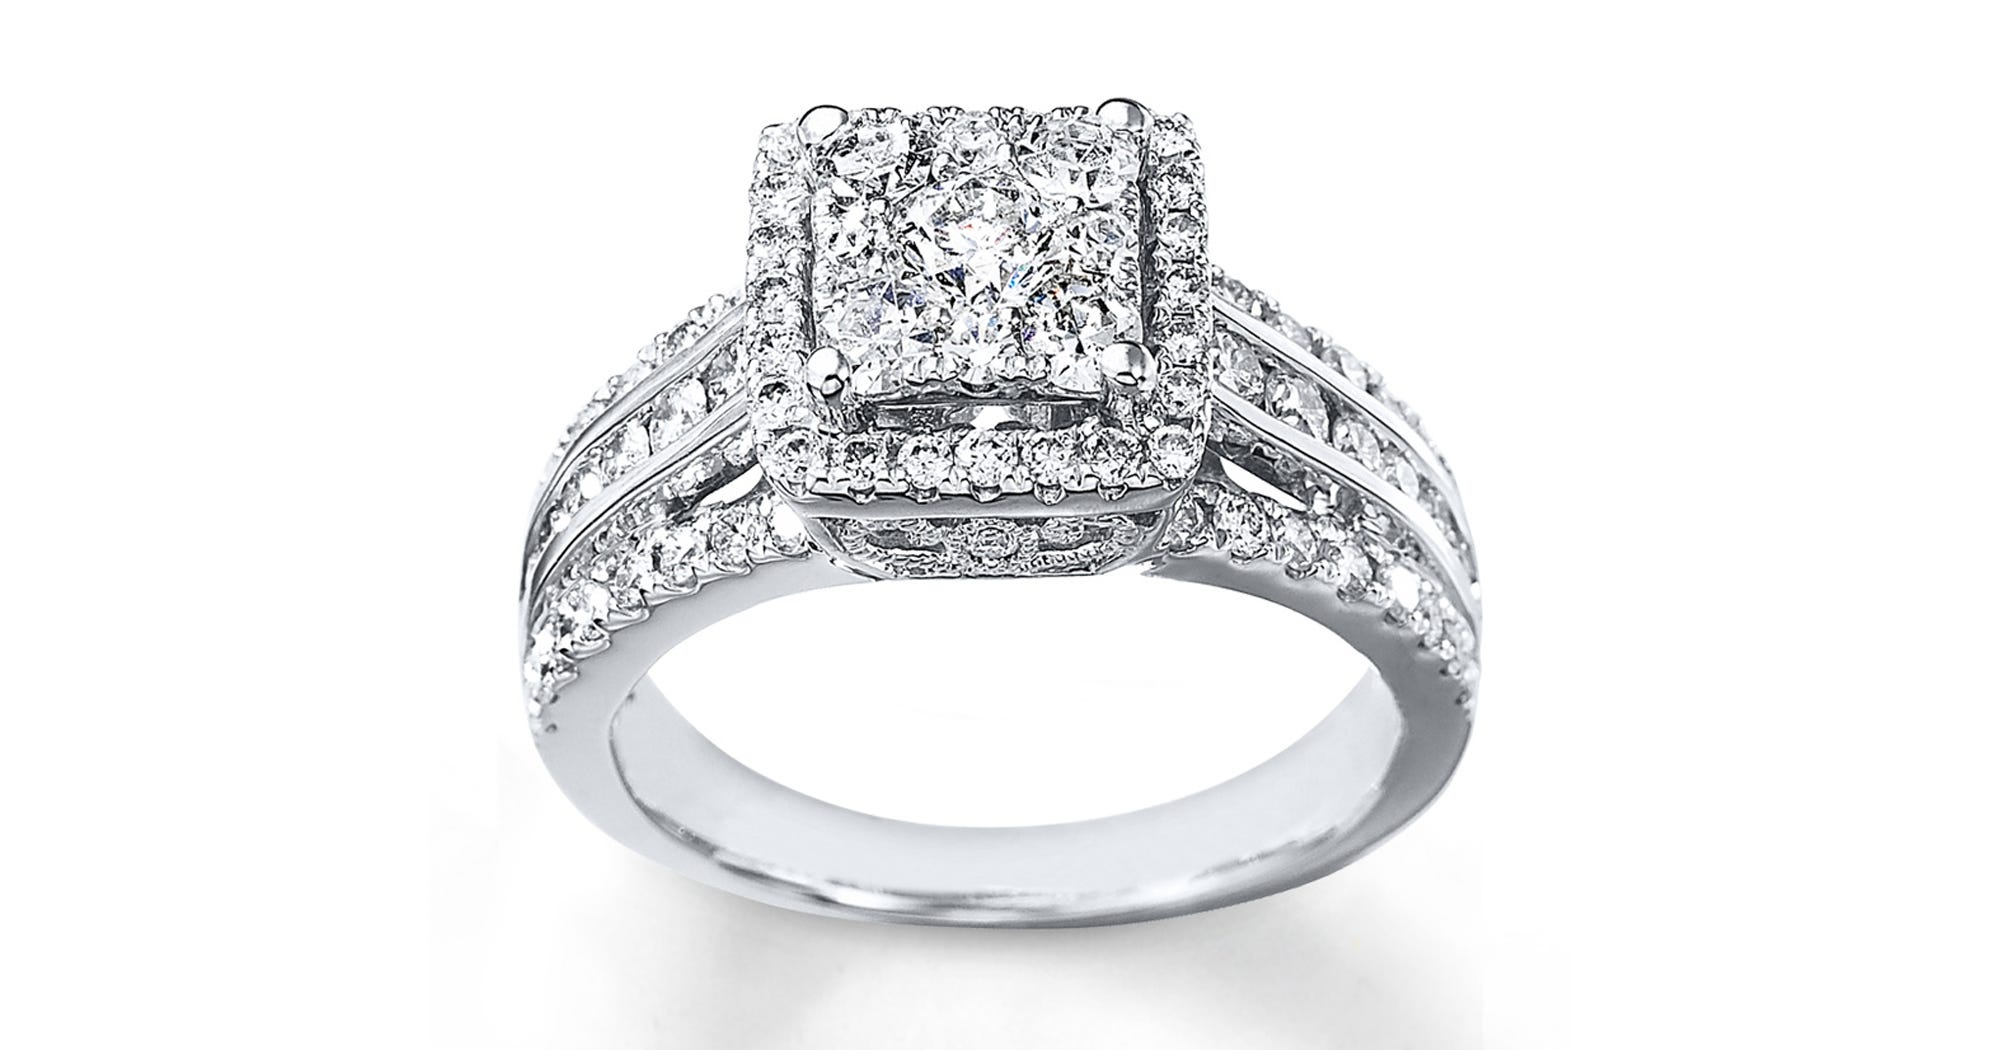 kay elegant engagement galery princess of diamond jewelers rings anisa at new cut usa ring image wedding